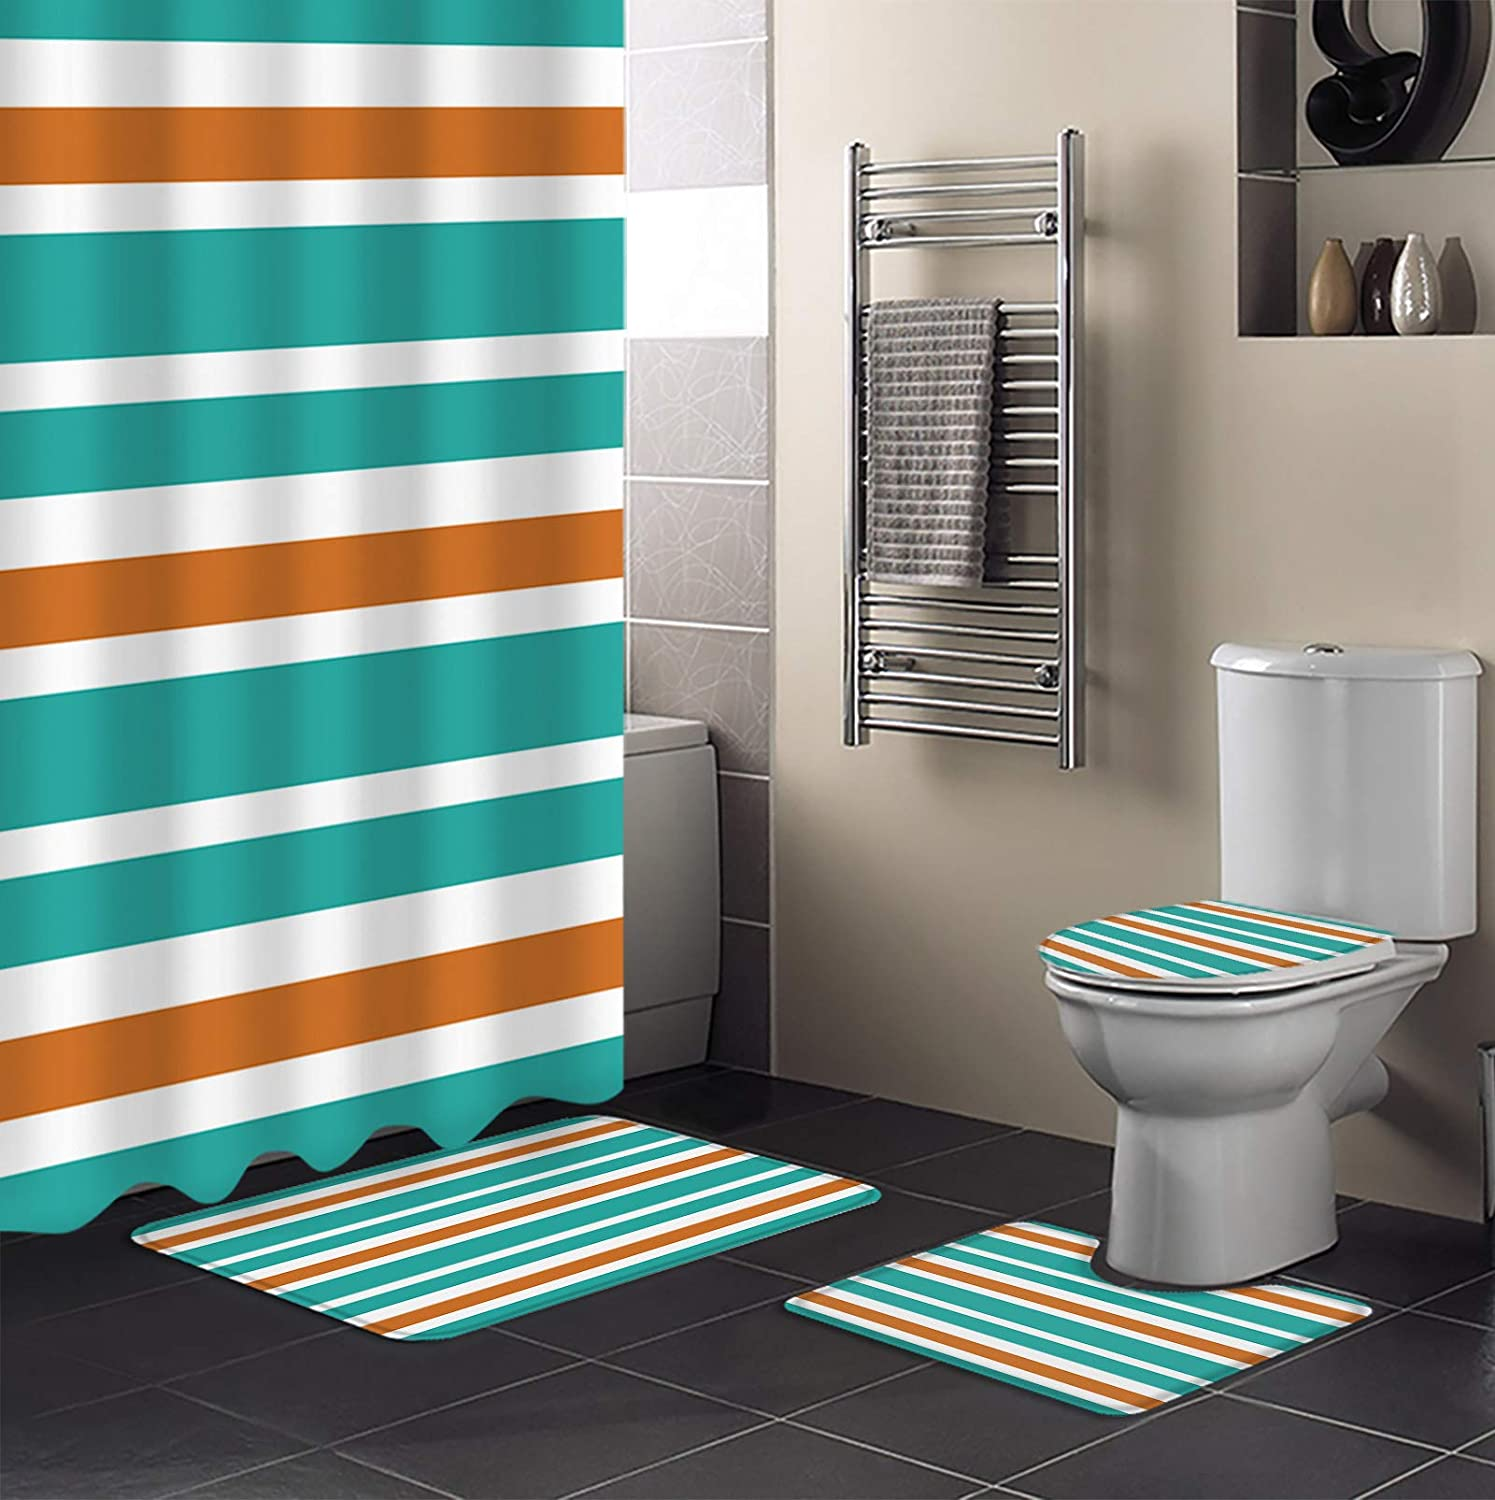 4 PCS Shower Curtain Safety and trust Sets with Waterproof Non-Sli Seasonal Wrap Introduction Bathroom